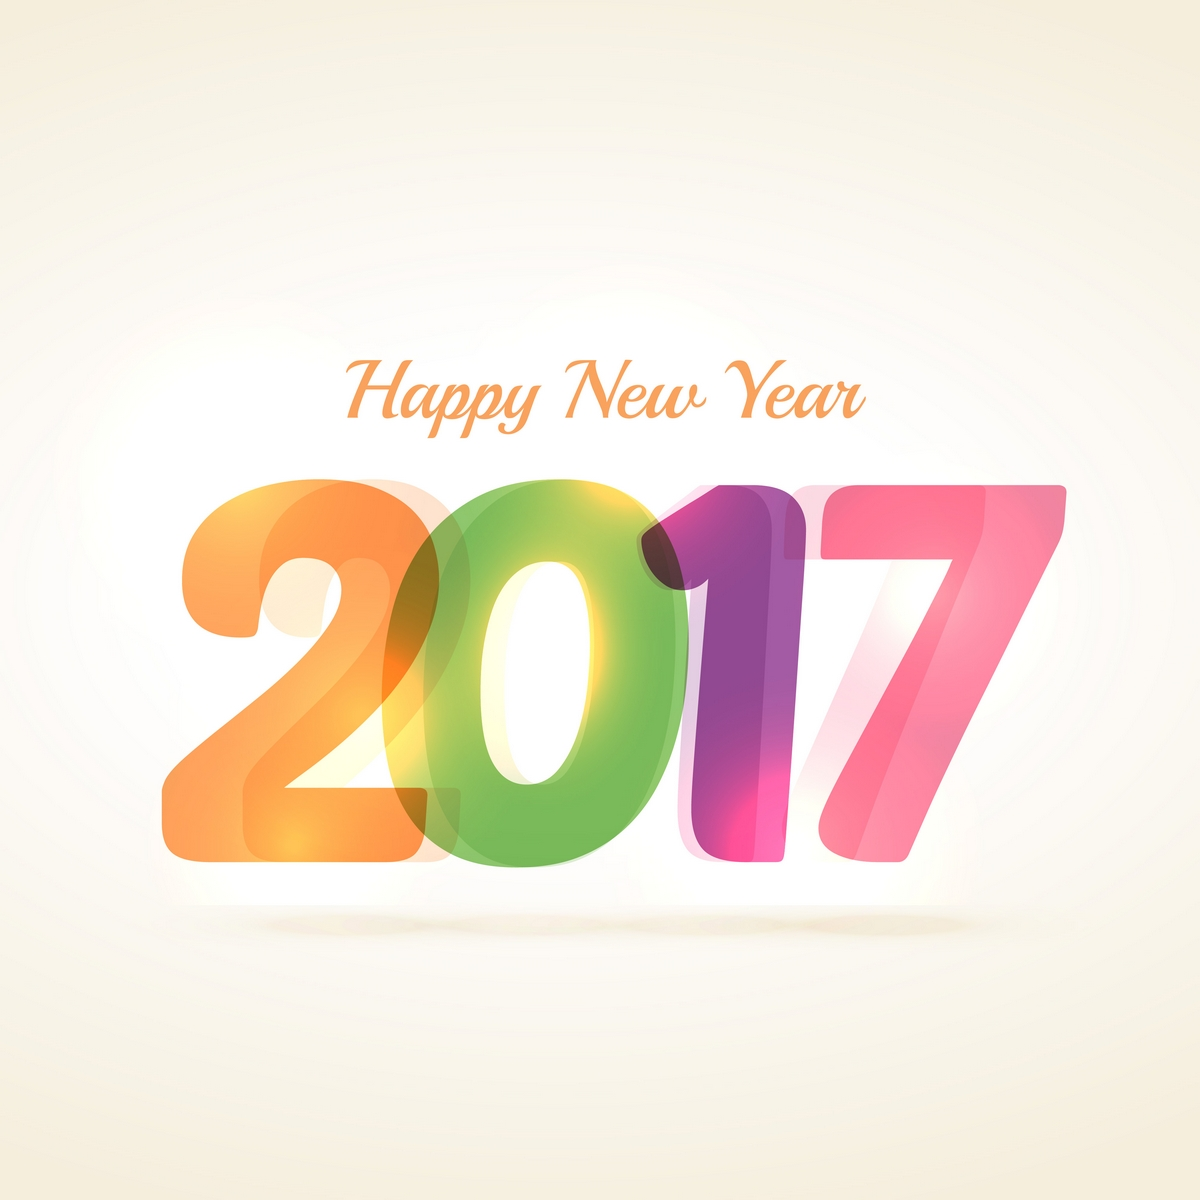 happy new year hd images wallpapers photos 2017 free download polesmag